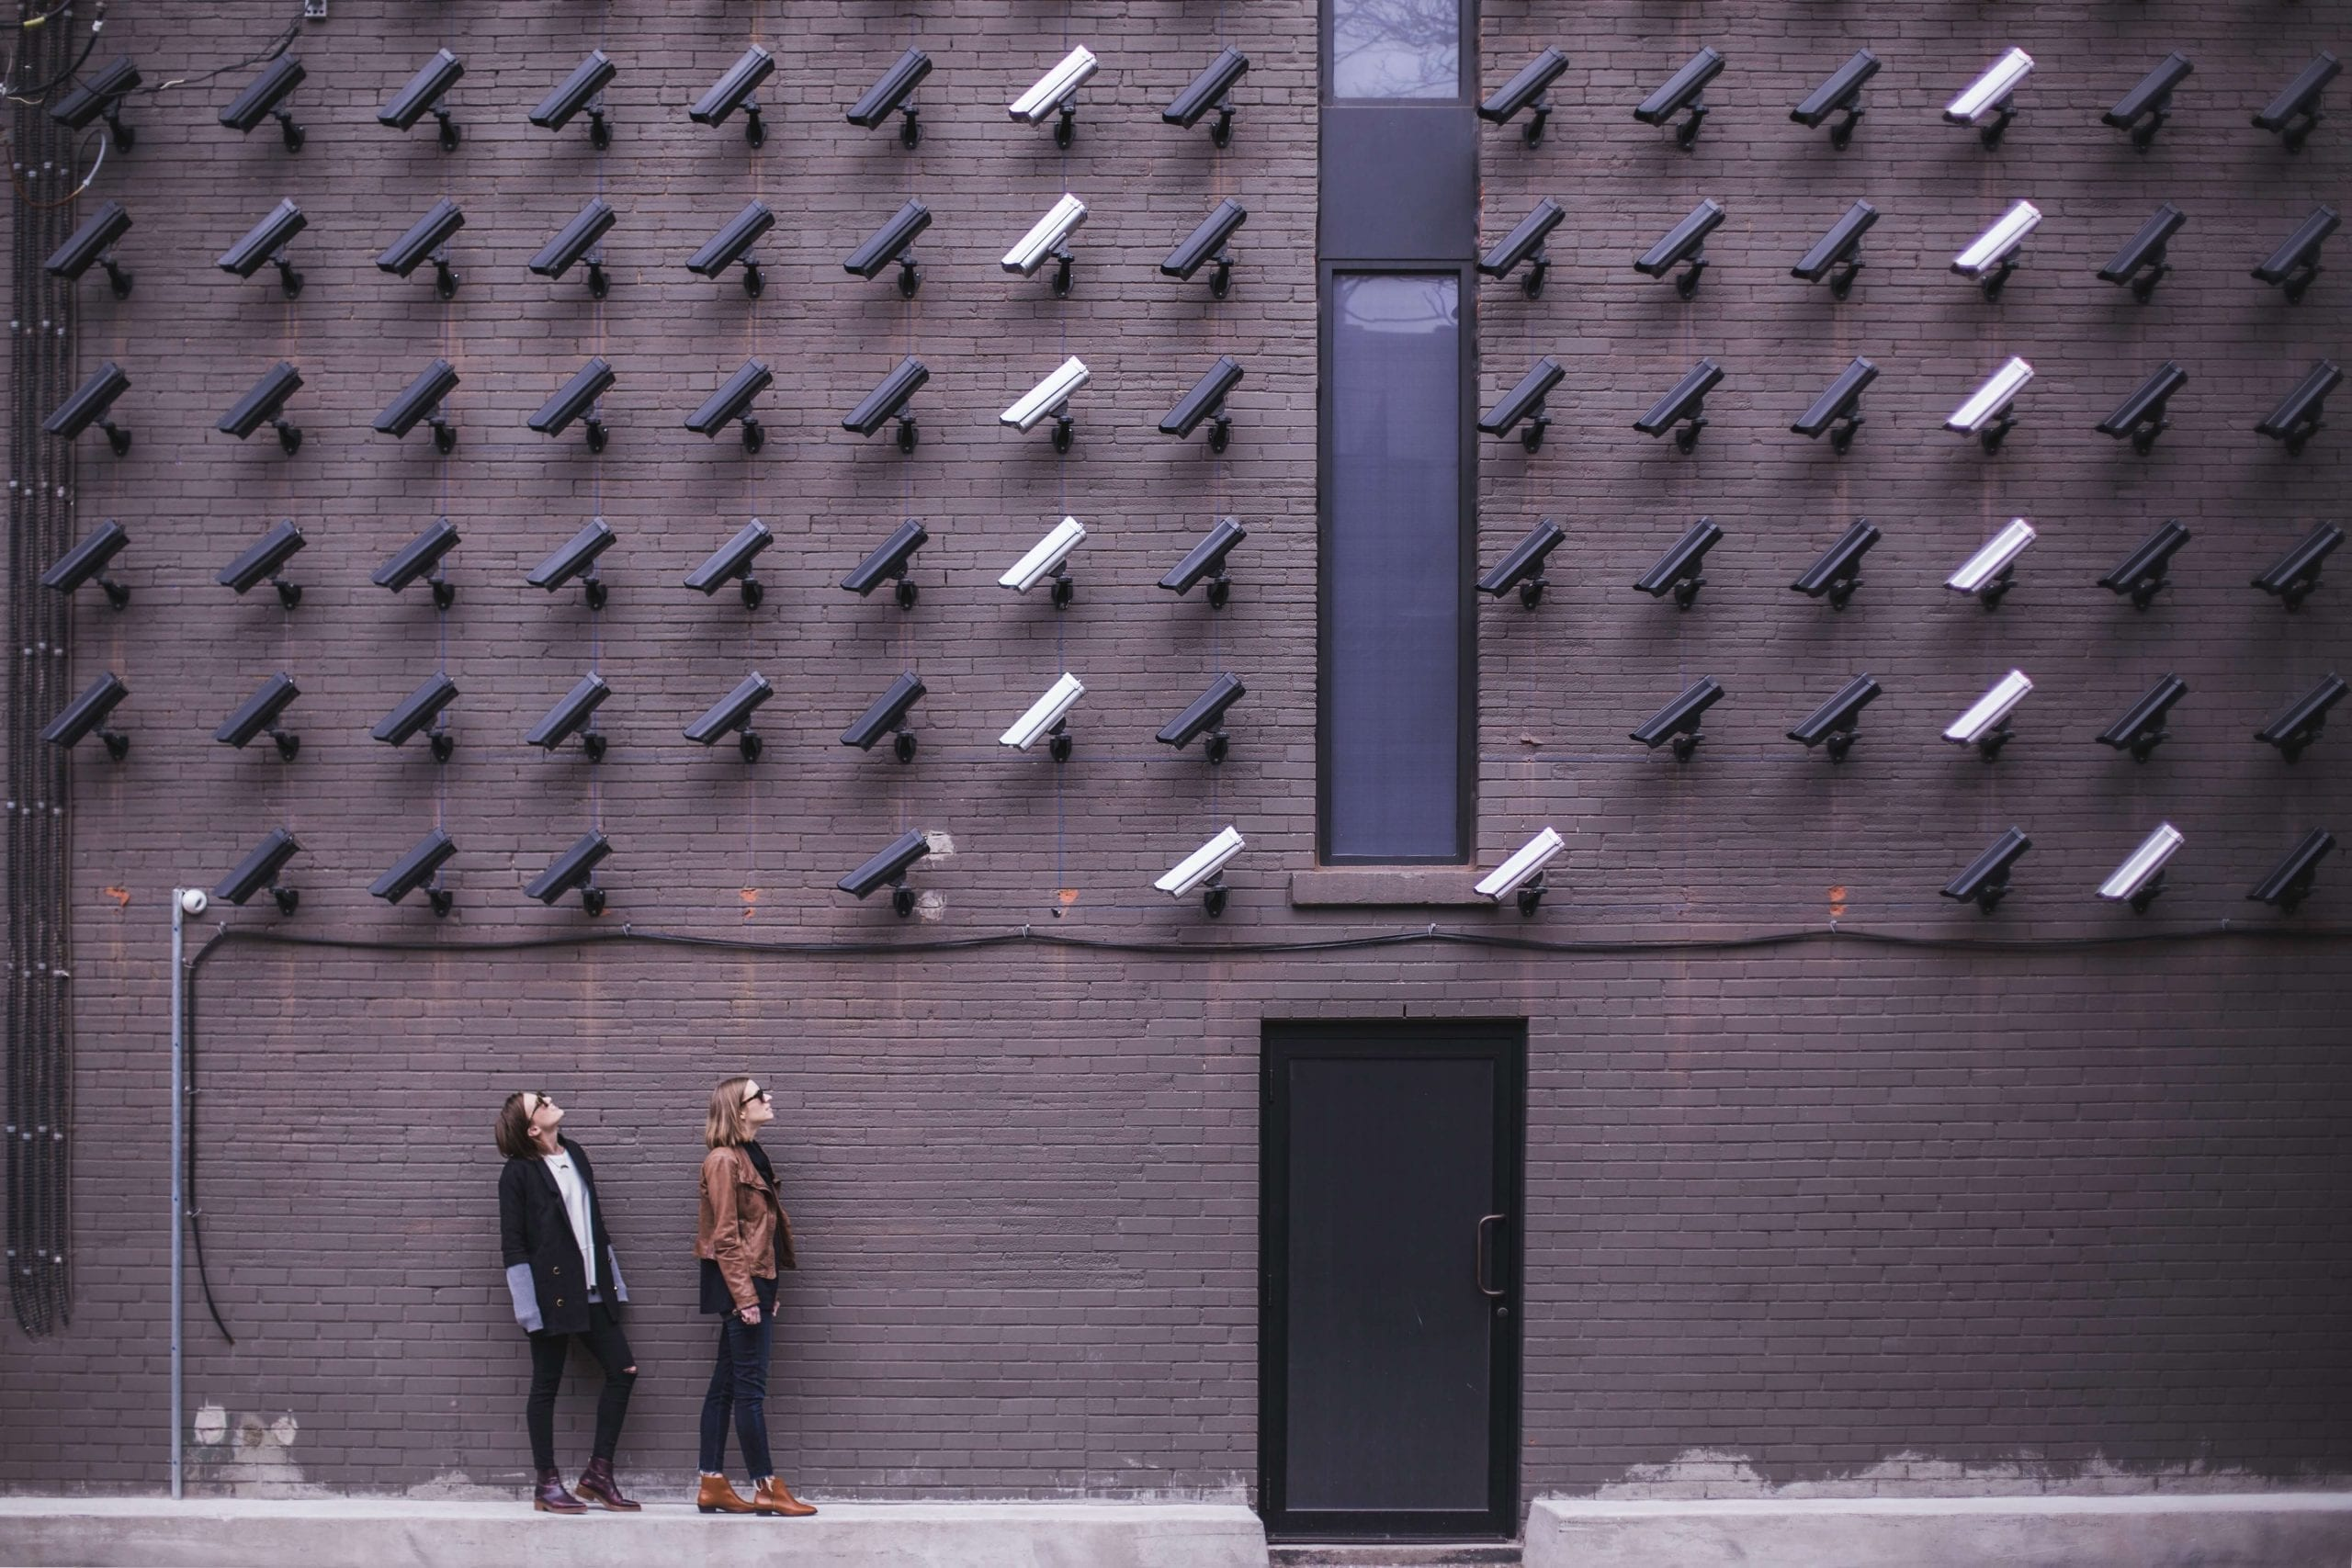 Two women outside building with security cameras art installation